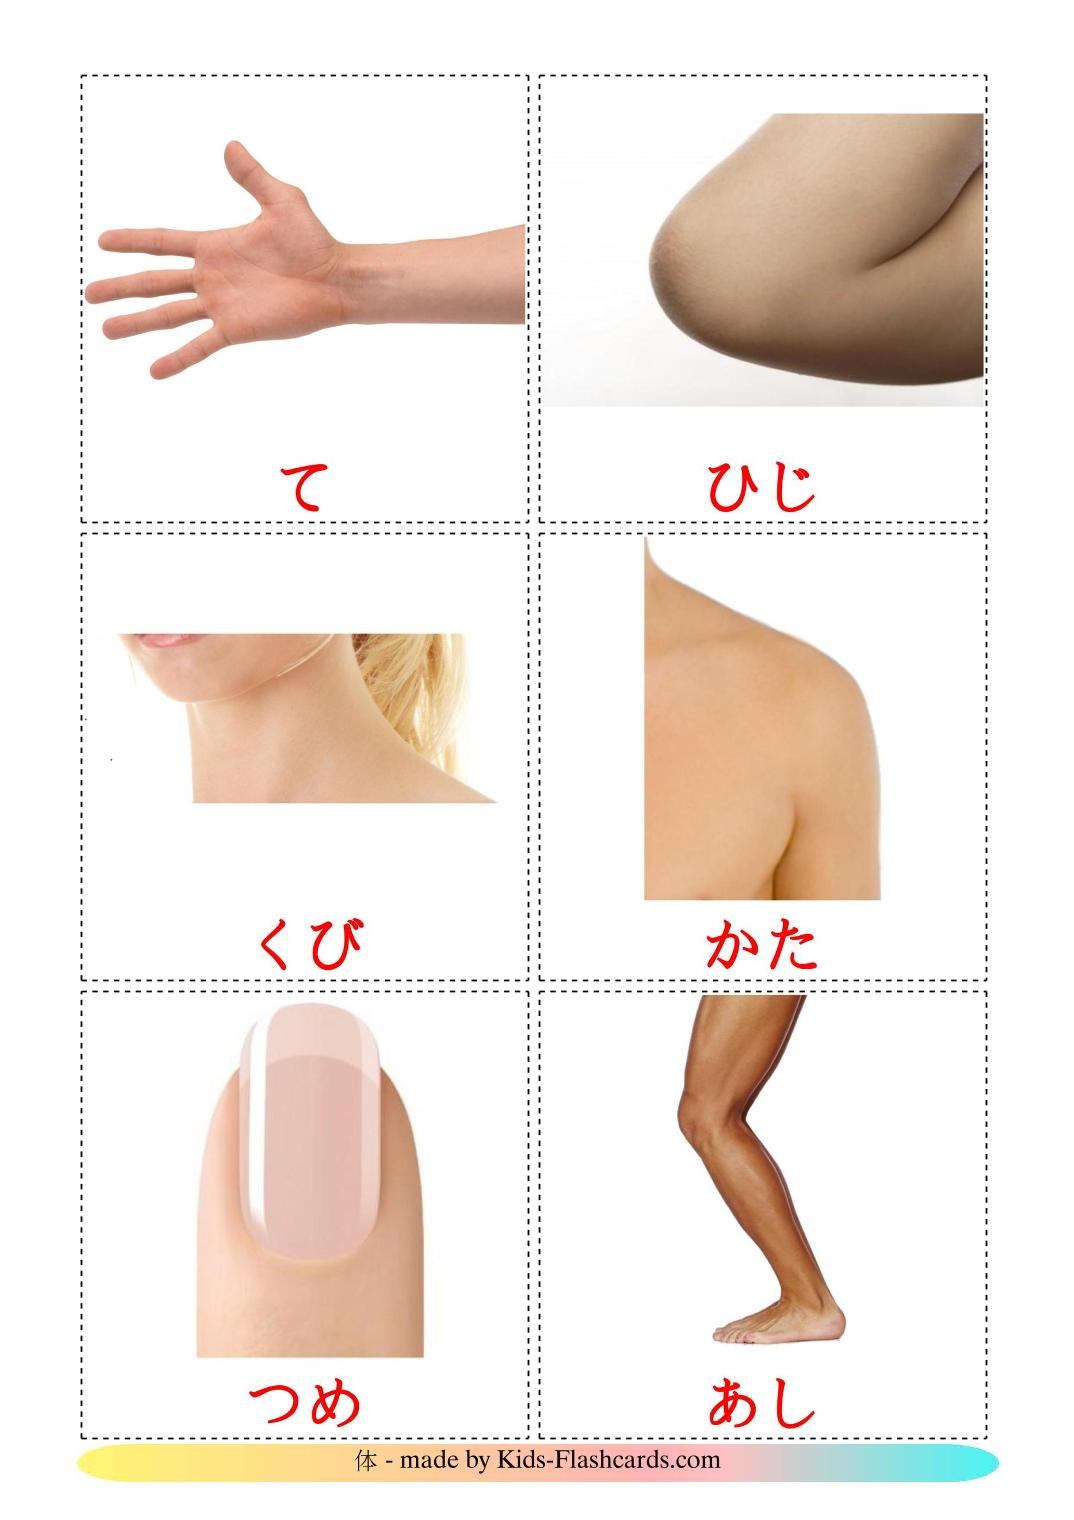 Body Parts - 26 Free Printable japanese Flashcards